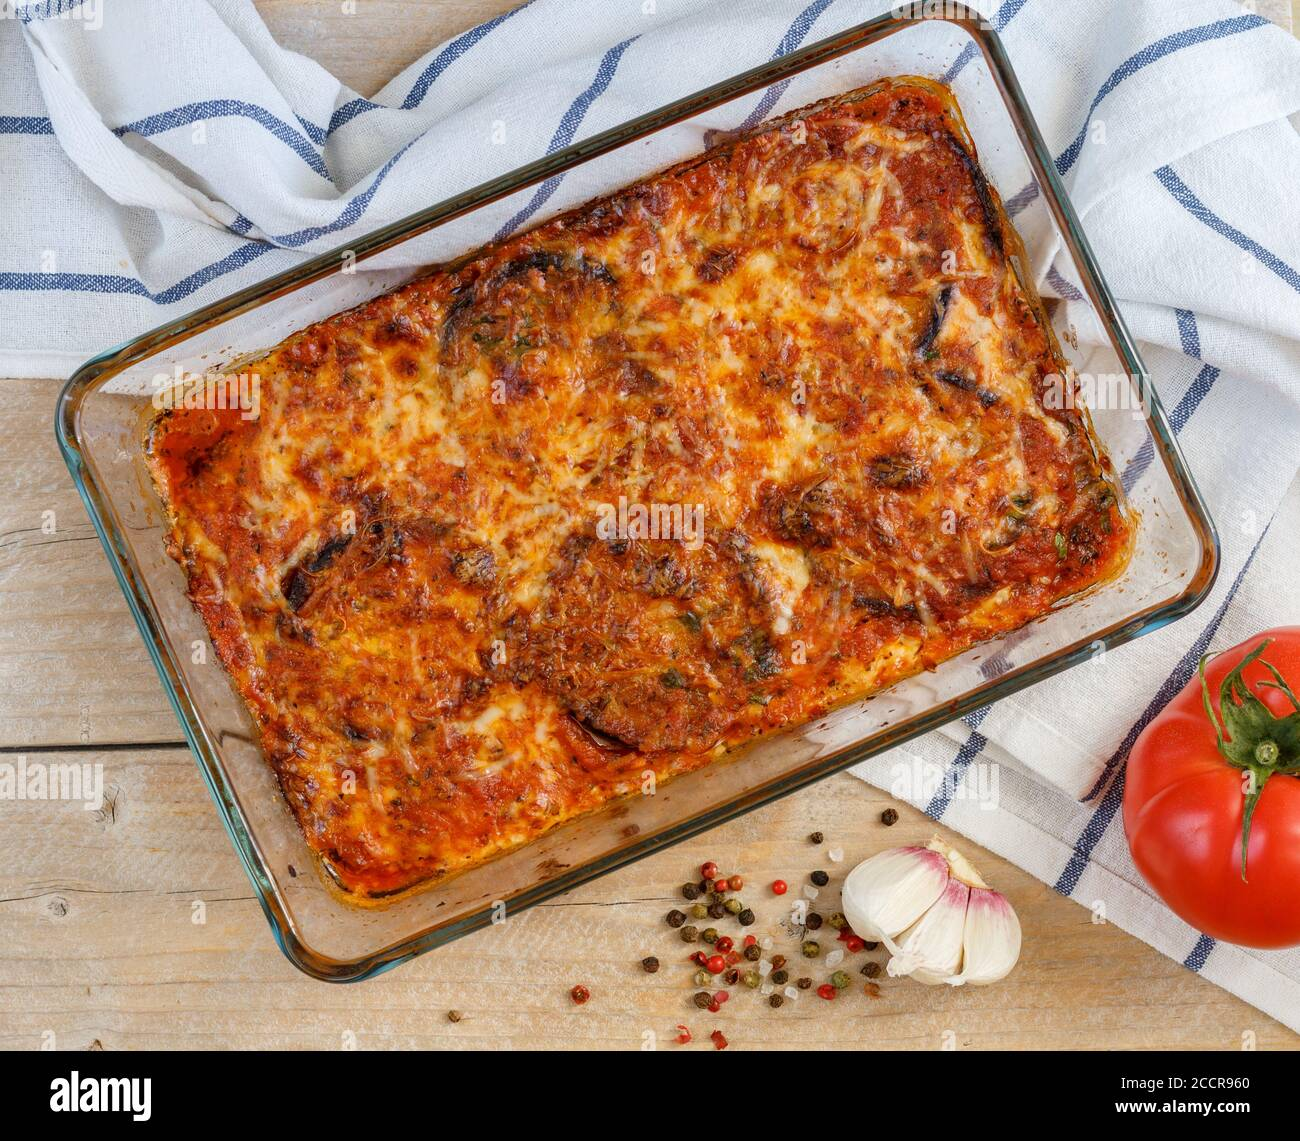 Baked Aubergine Slices With Tomato Sauce Cheese Parmesan Mozzarella Garlic Basil And Spices Eggplant Parmigiana Traditional Italian Dish Sele Stock Photo Alamy